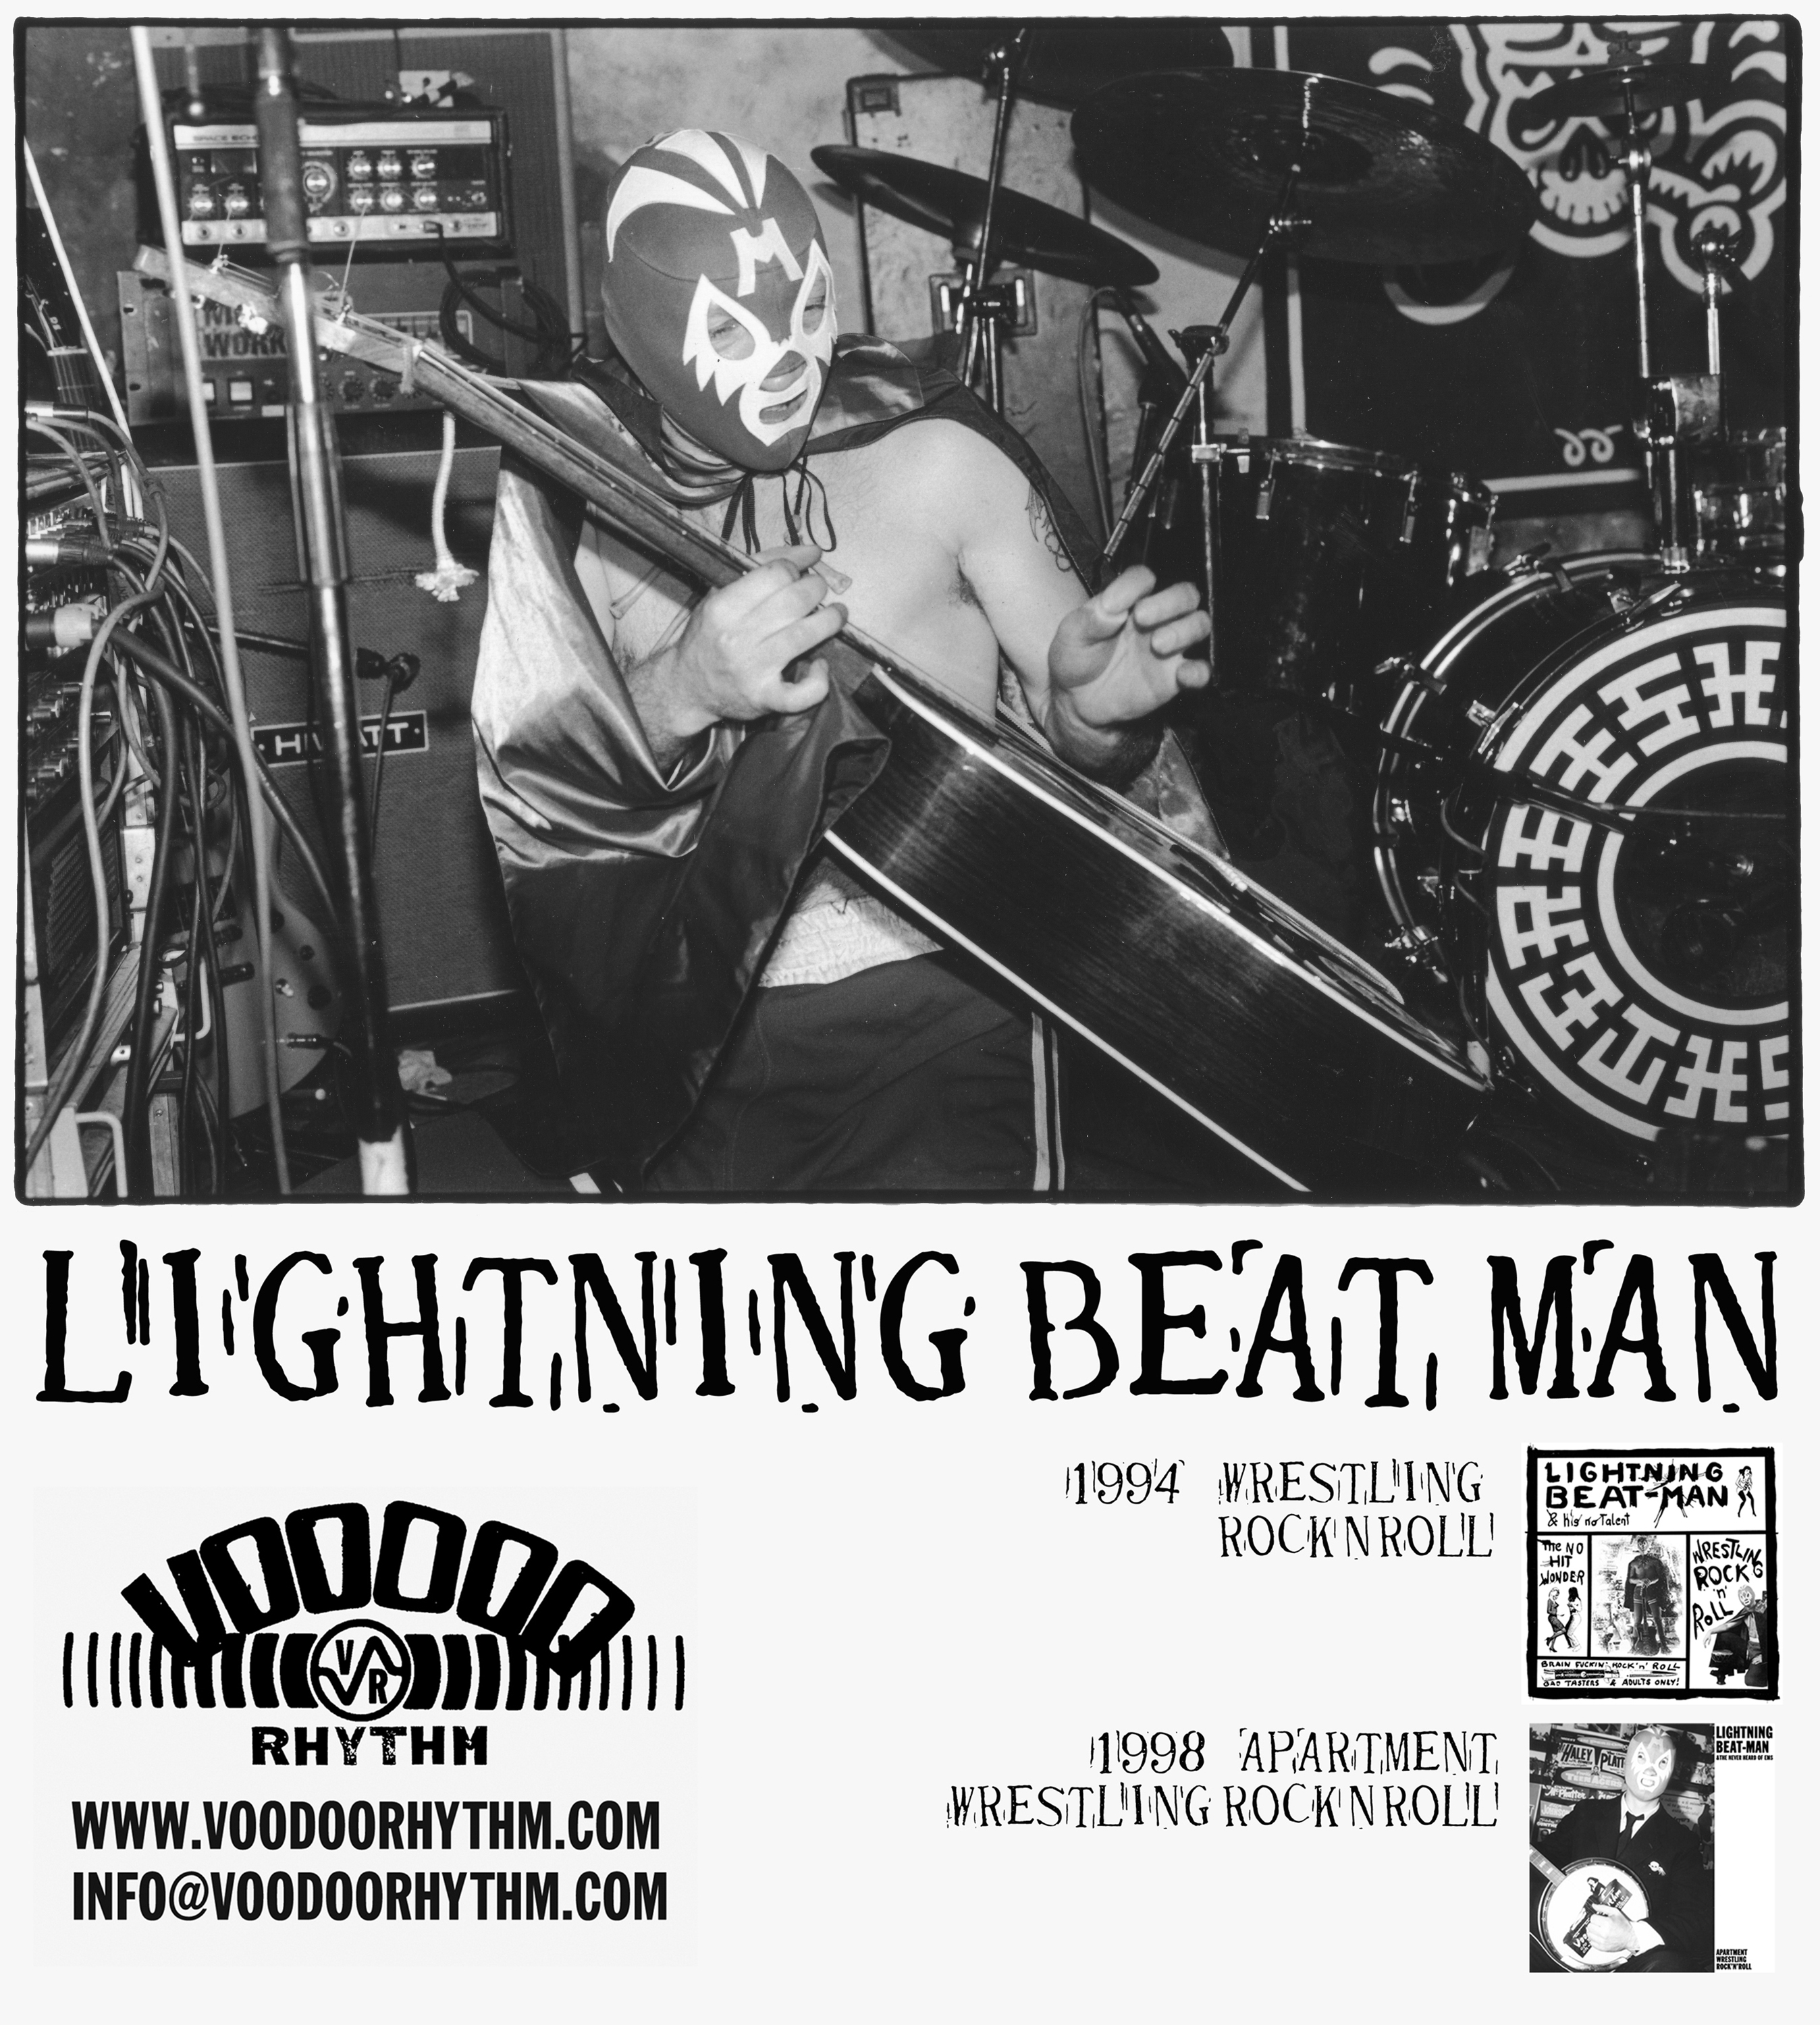 LIGHTNING-BEAT-MAN